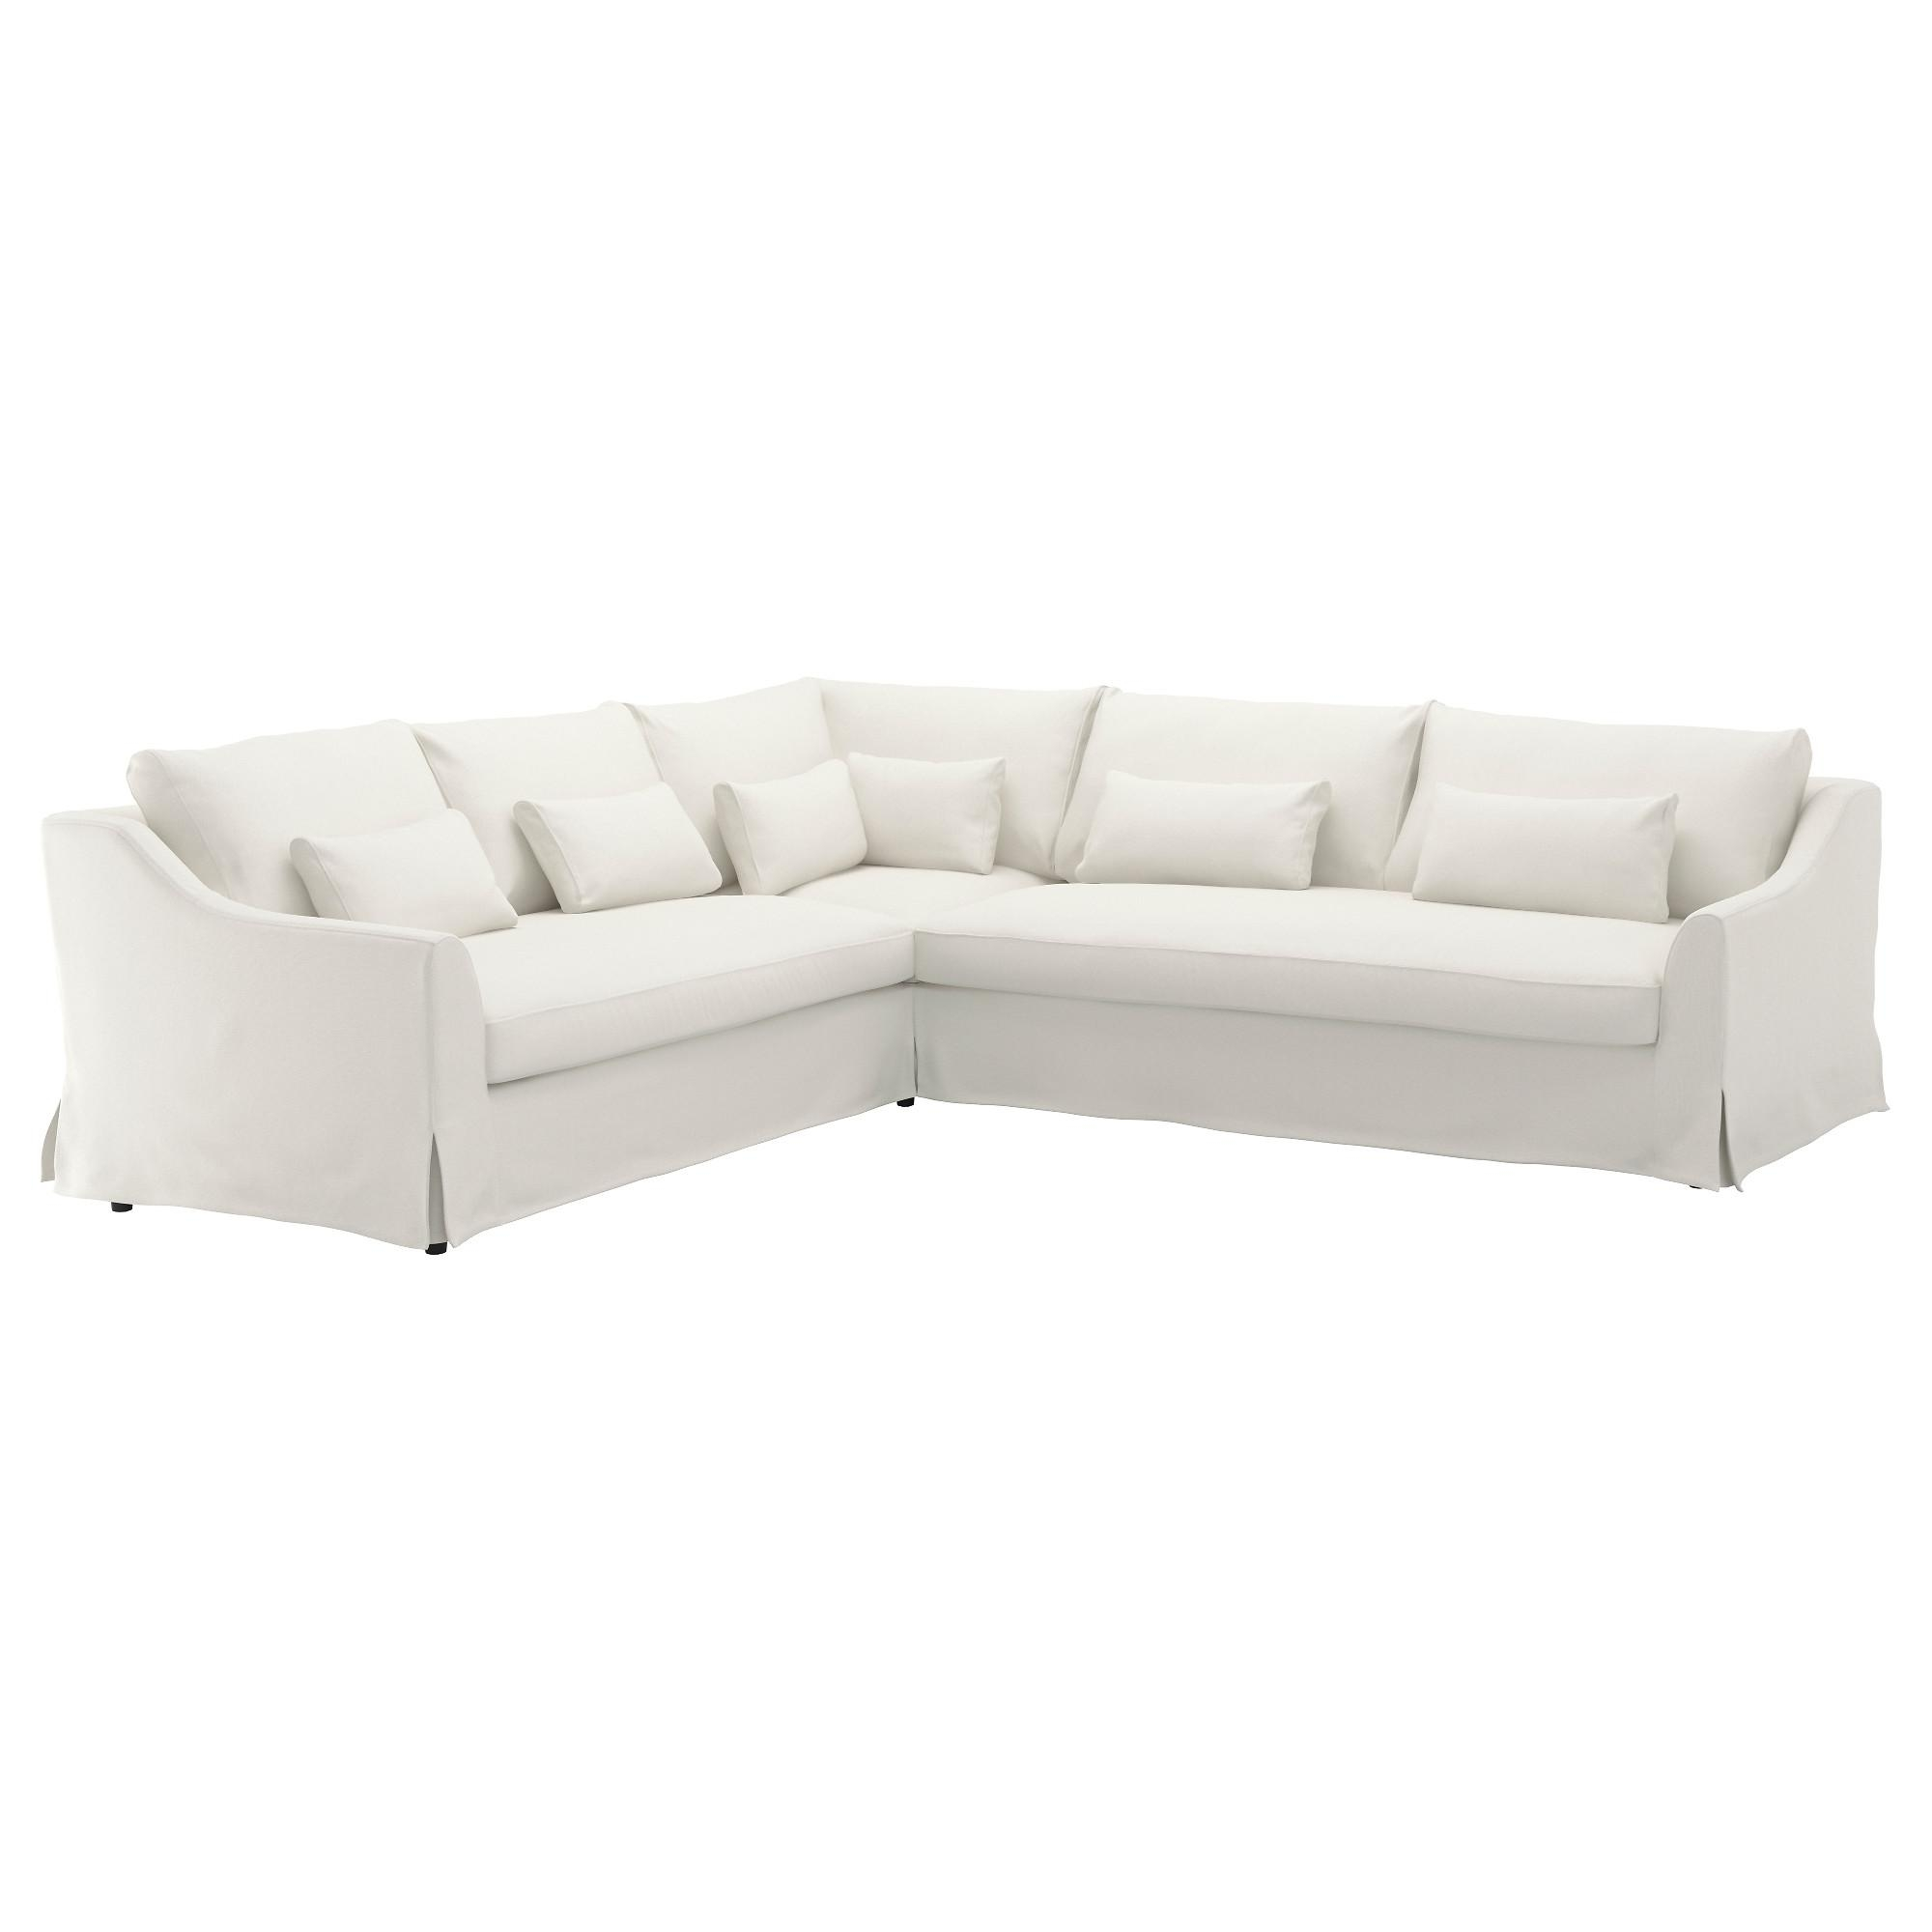 Fabric Sectional Sofas – Ikea Regarding Ikea Sectional Sofa Bed (Image 3 of 20)